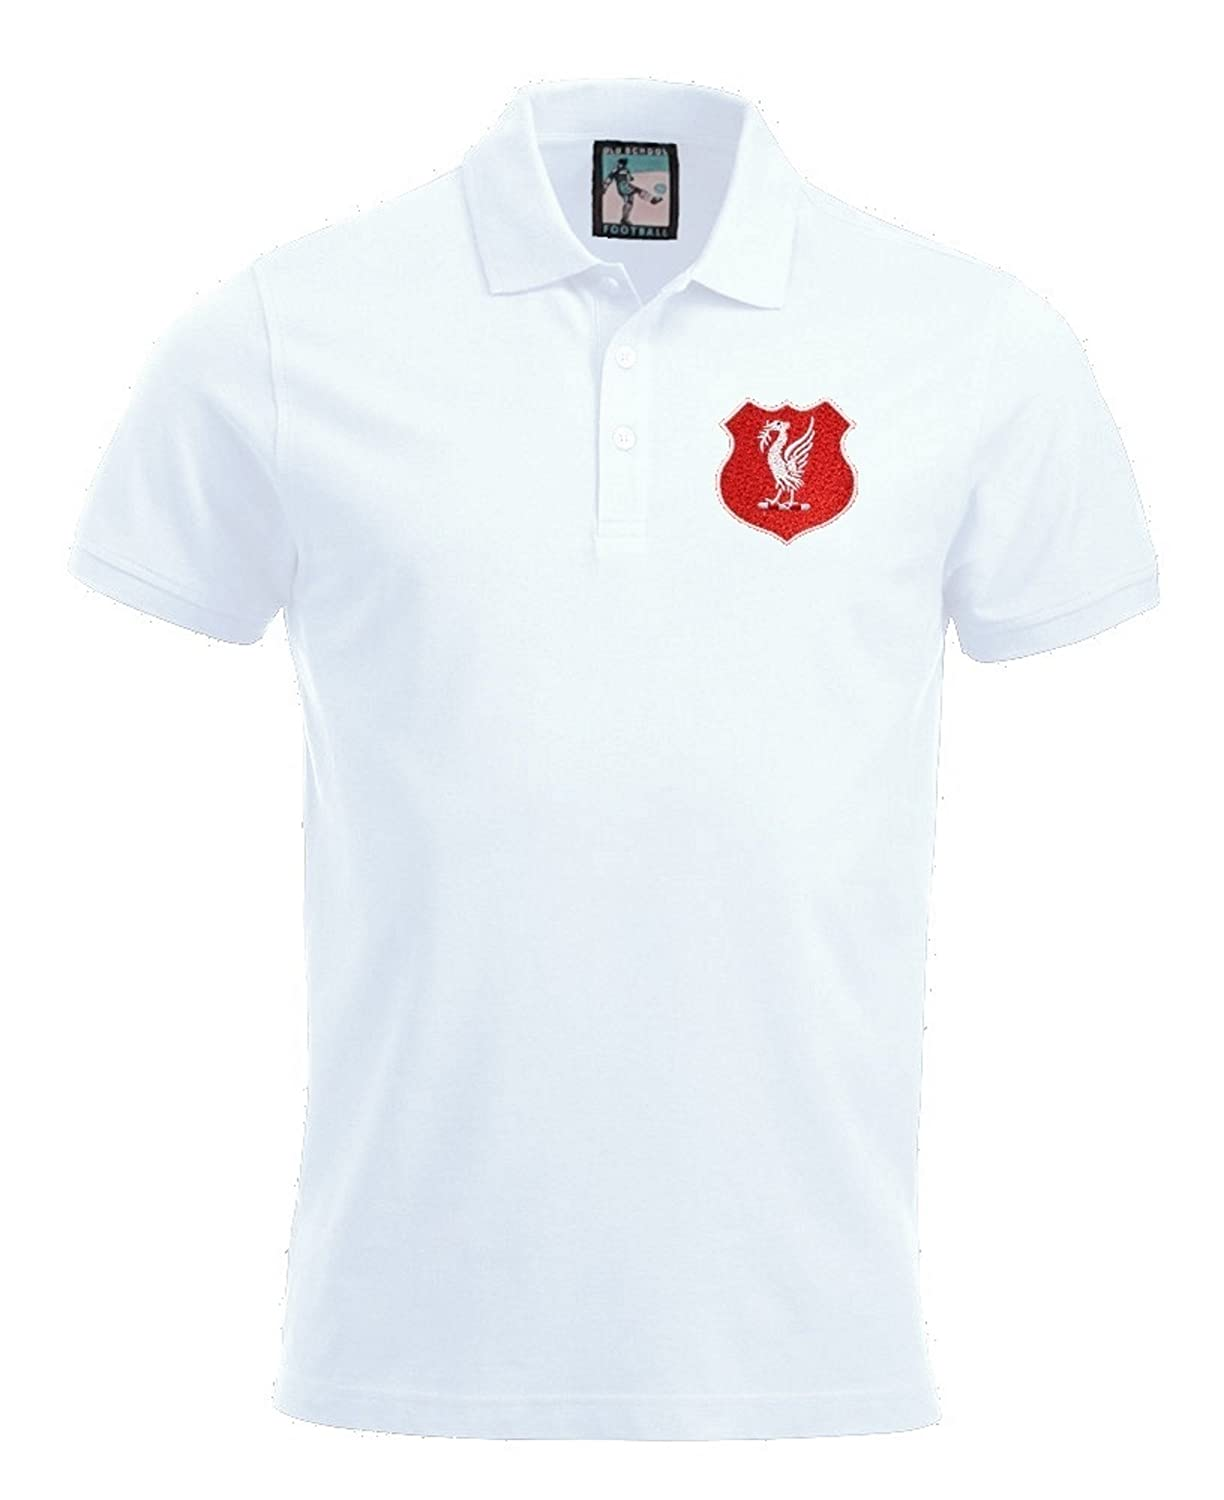 Old School Football Liverpool Fútbol Polo Tallas S - XXXL Logotipo ...